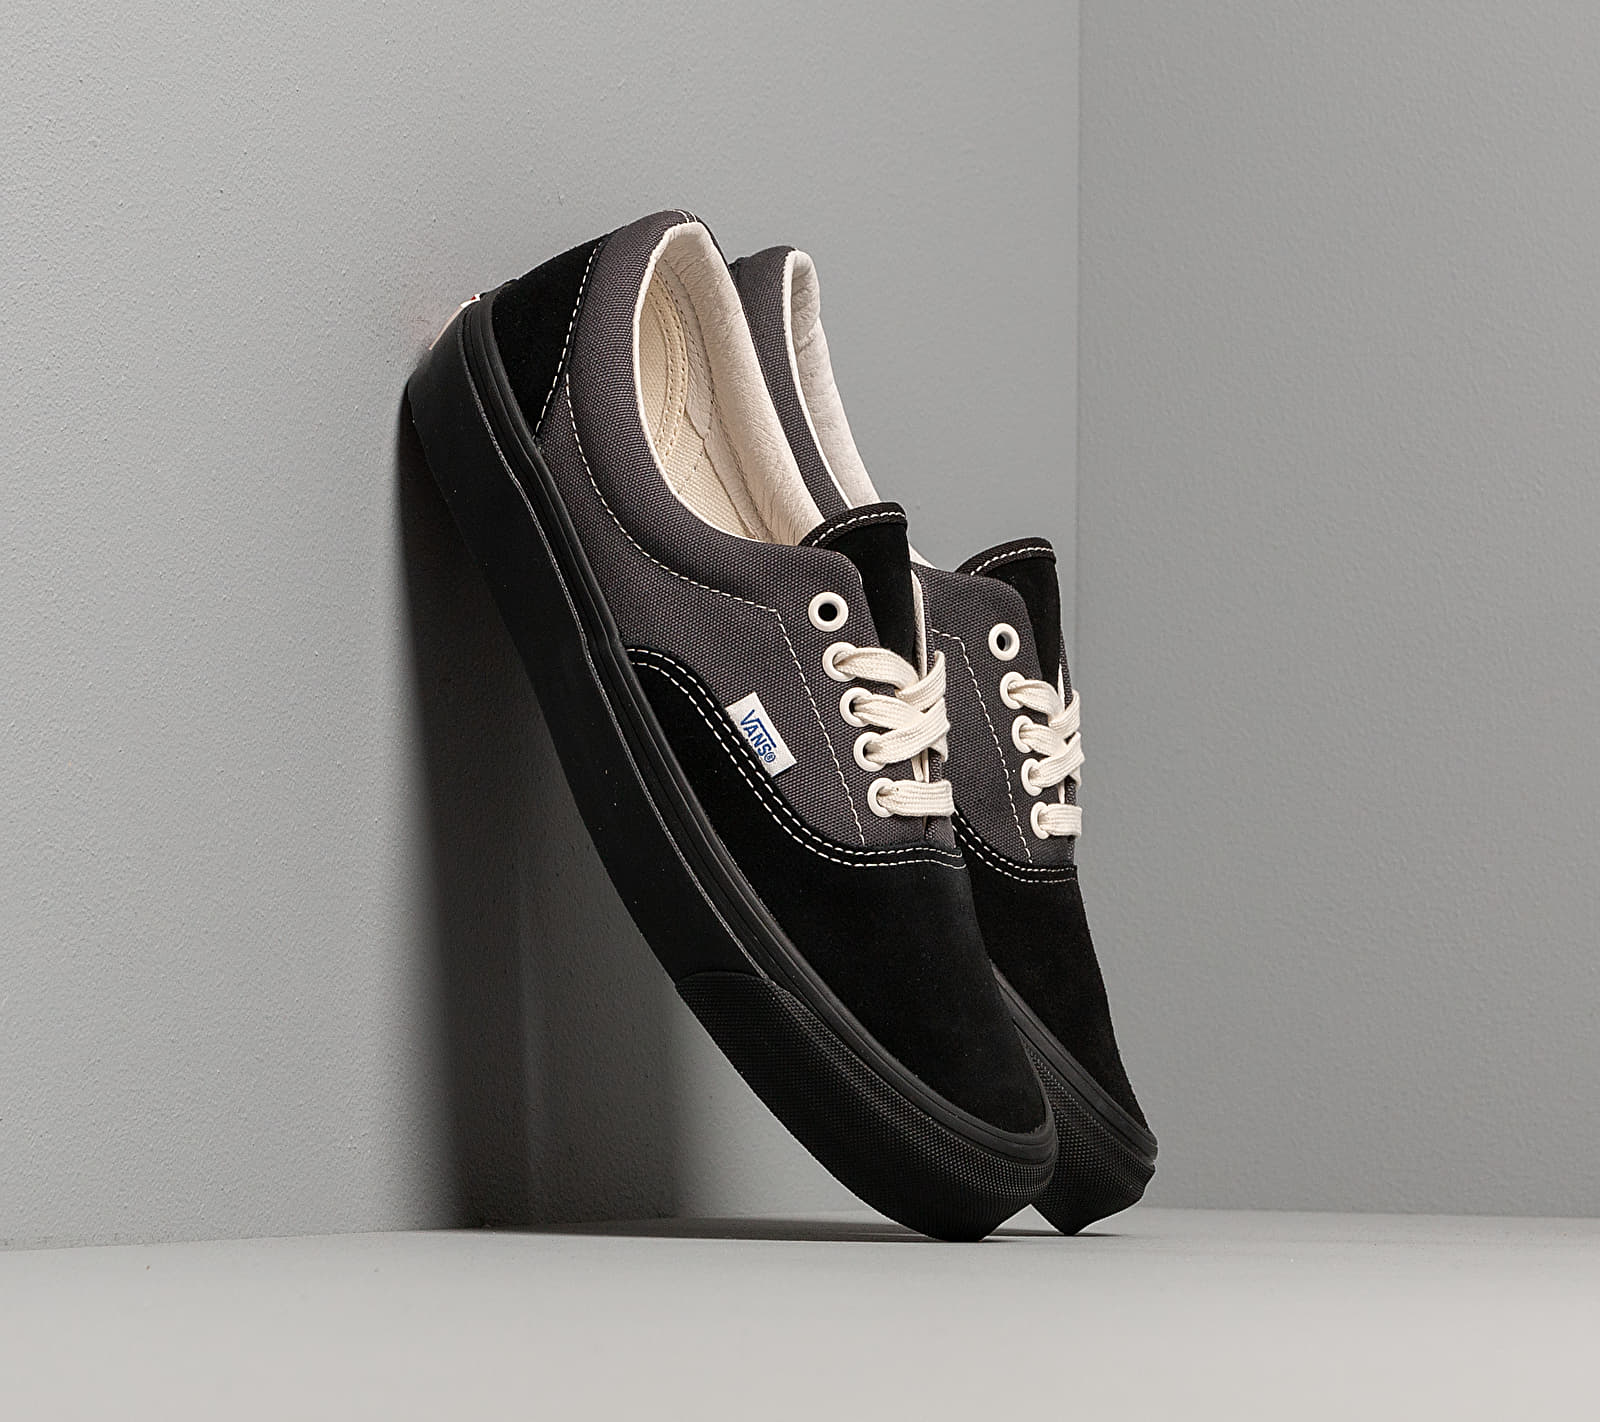 Vans Og Era LX (Suede/ Canvas) Black/ Forged Iron EUR 38.5